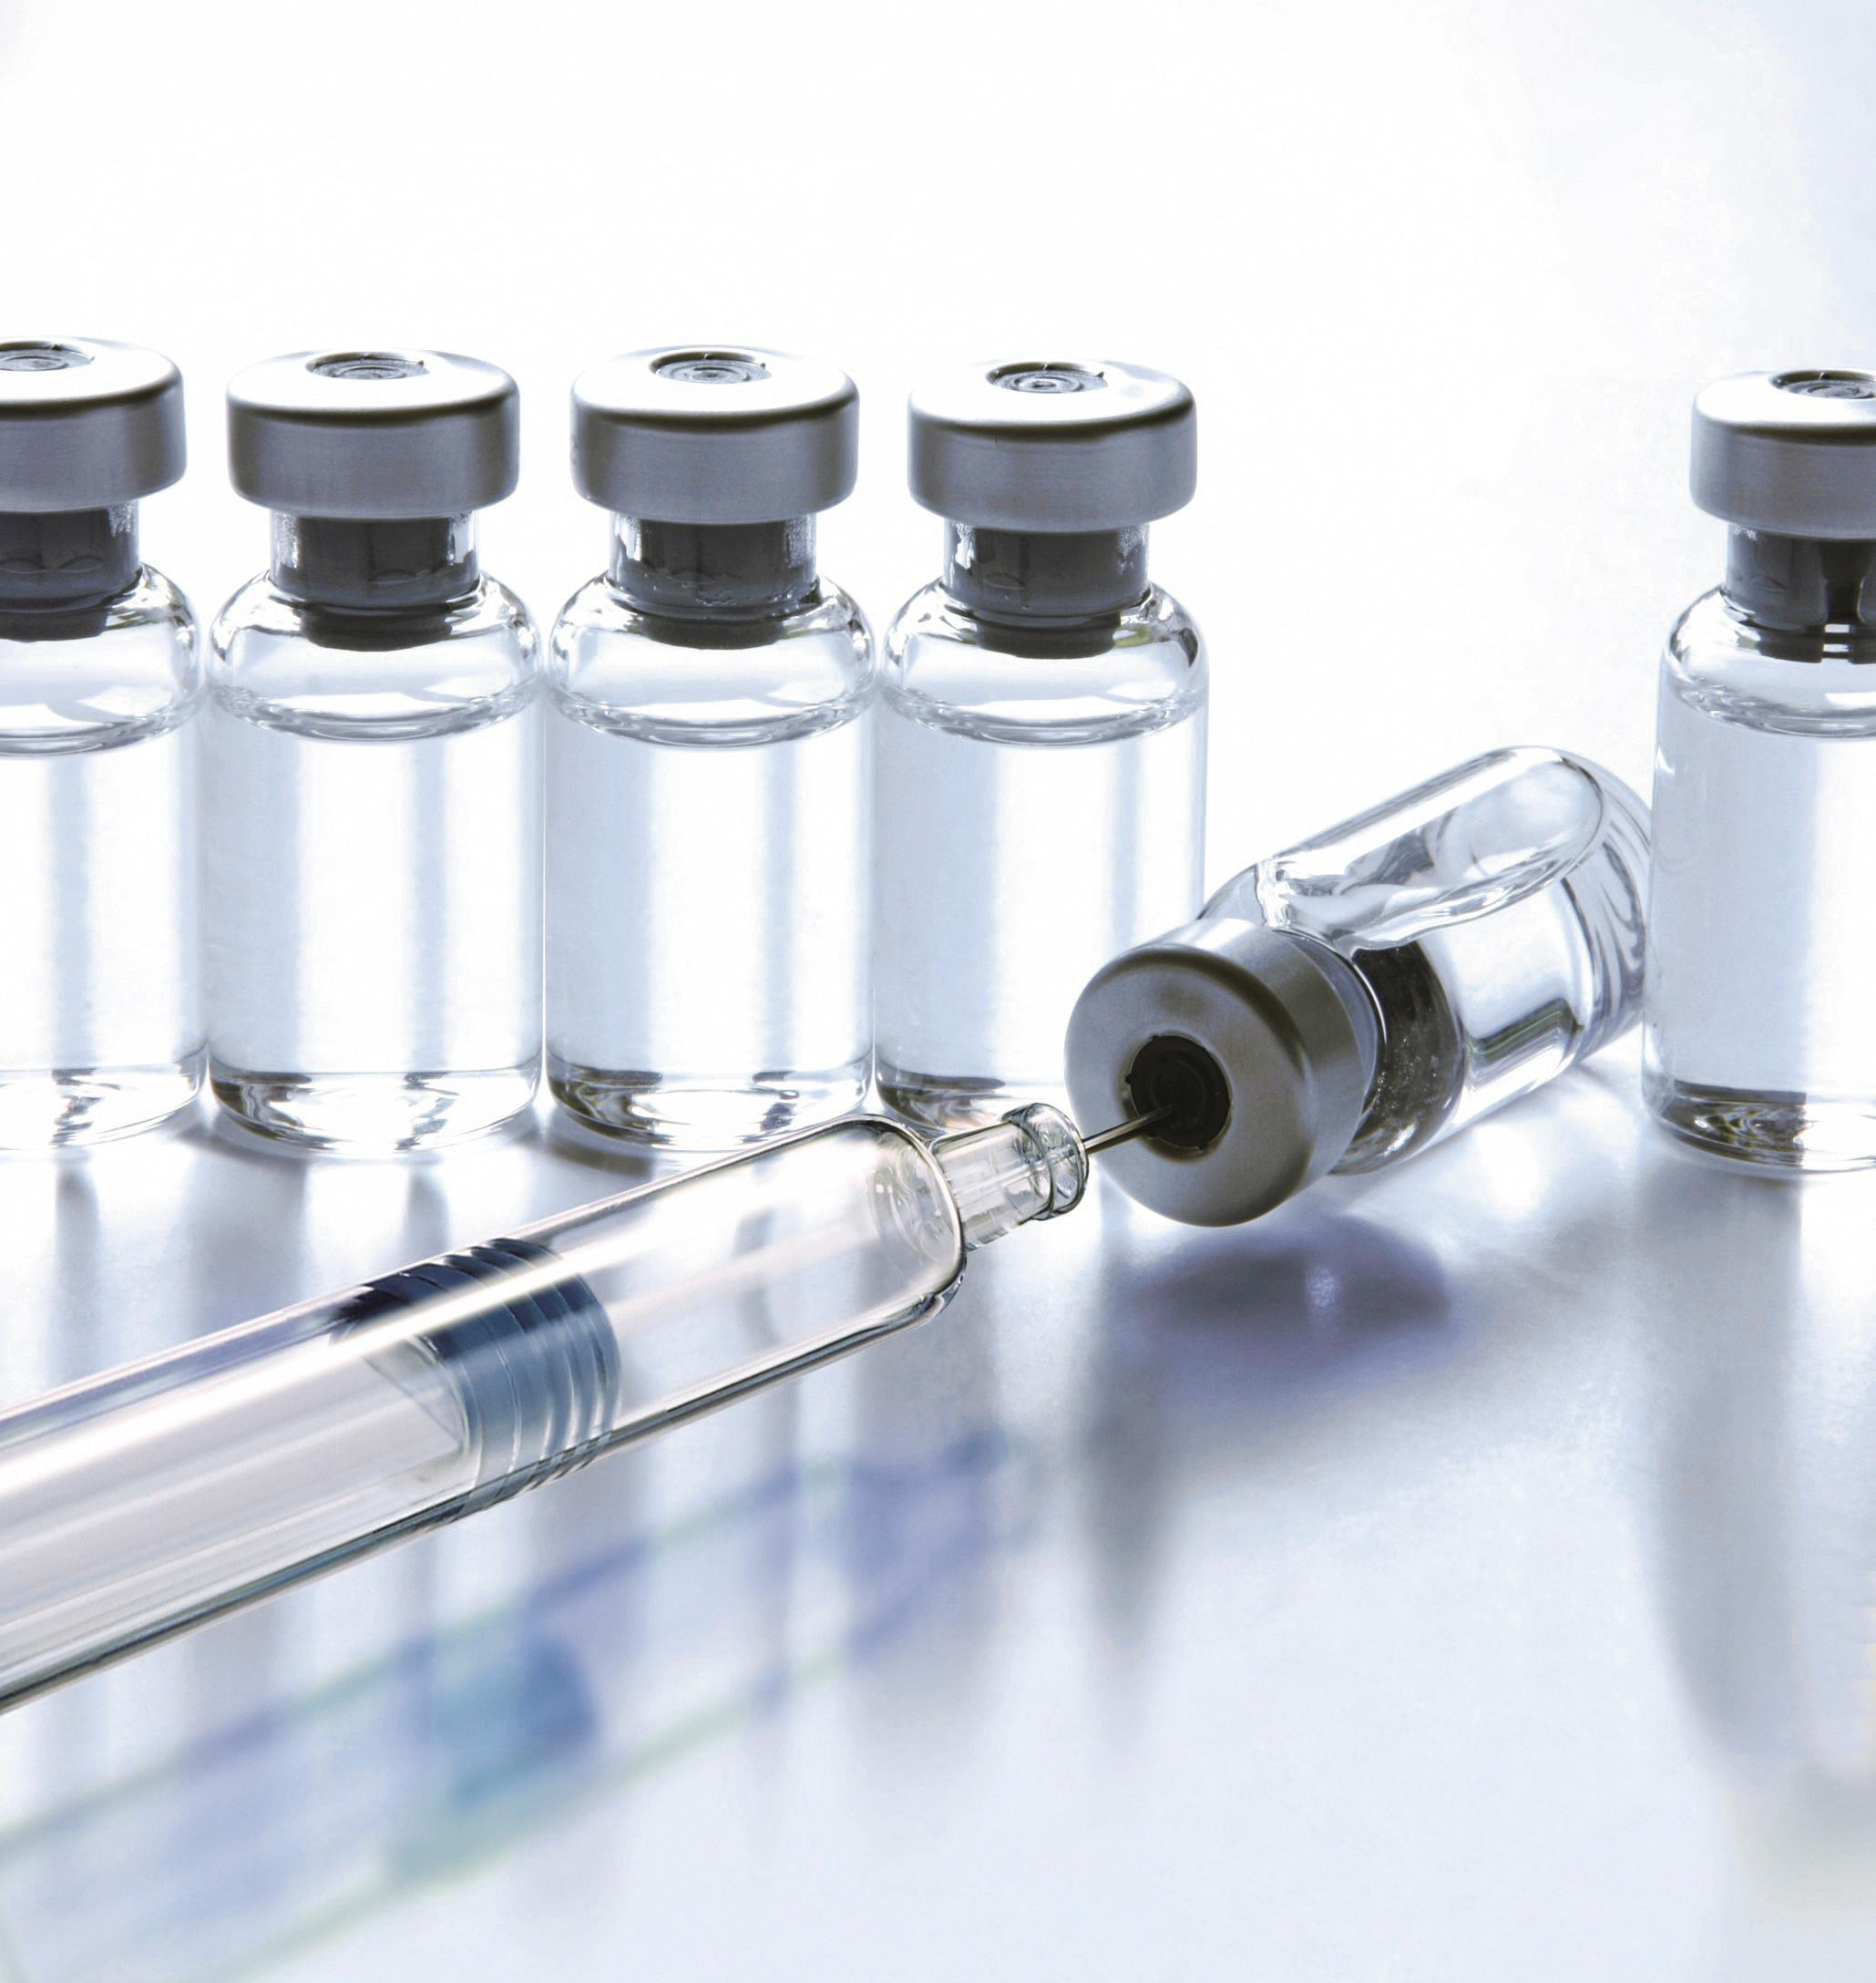 Solon wants funding for COVID-19 vaccination plan included in 2021 nat'l budget